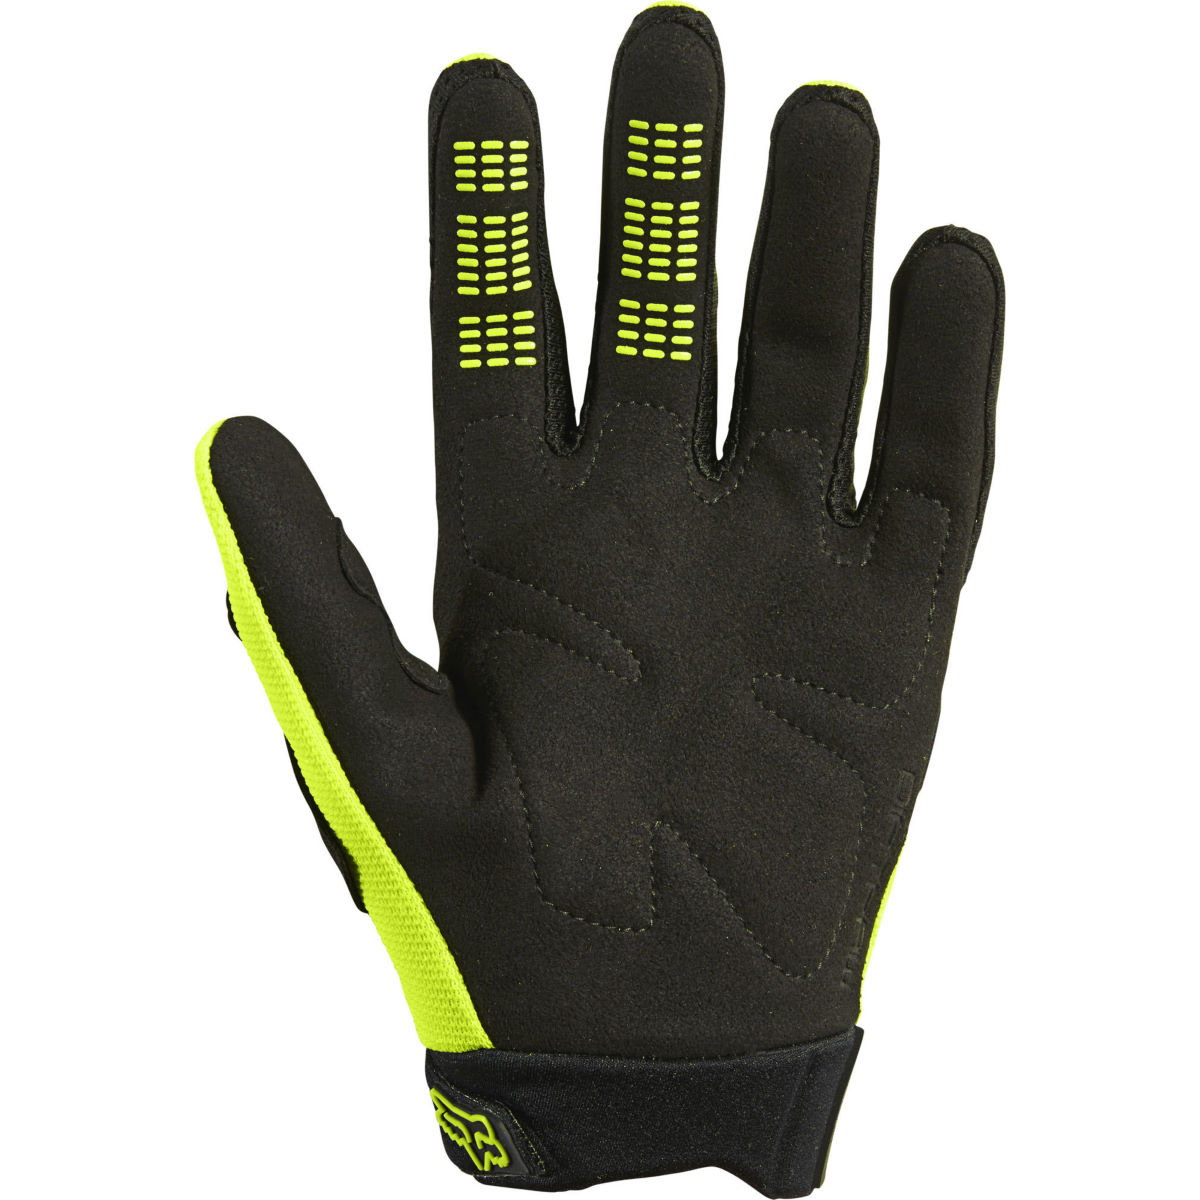 Fox Racing Youth Dirtpaw Race Cycling Gloves - Y-m Fluo Yellow